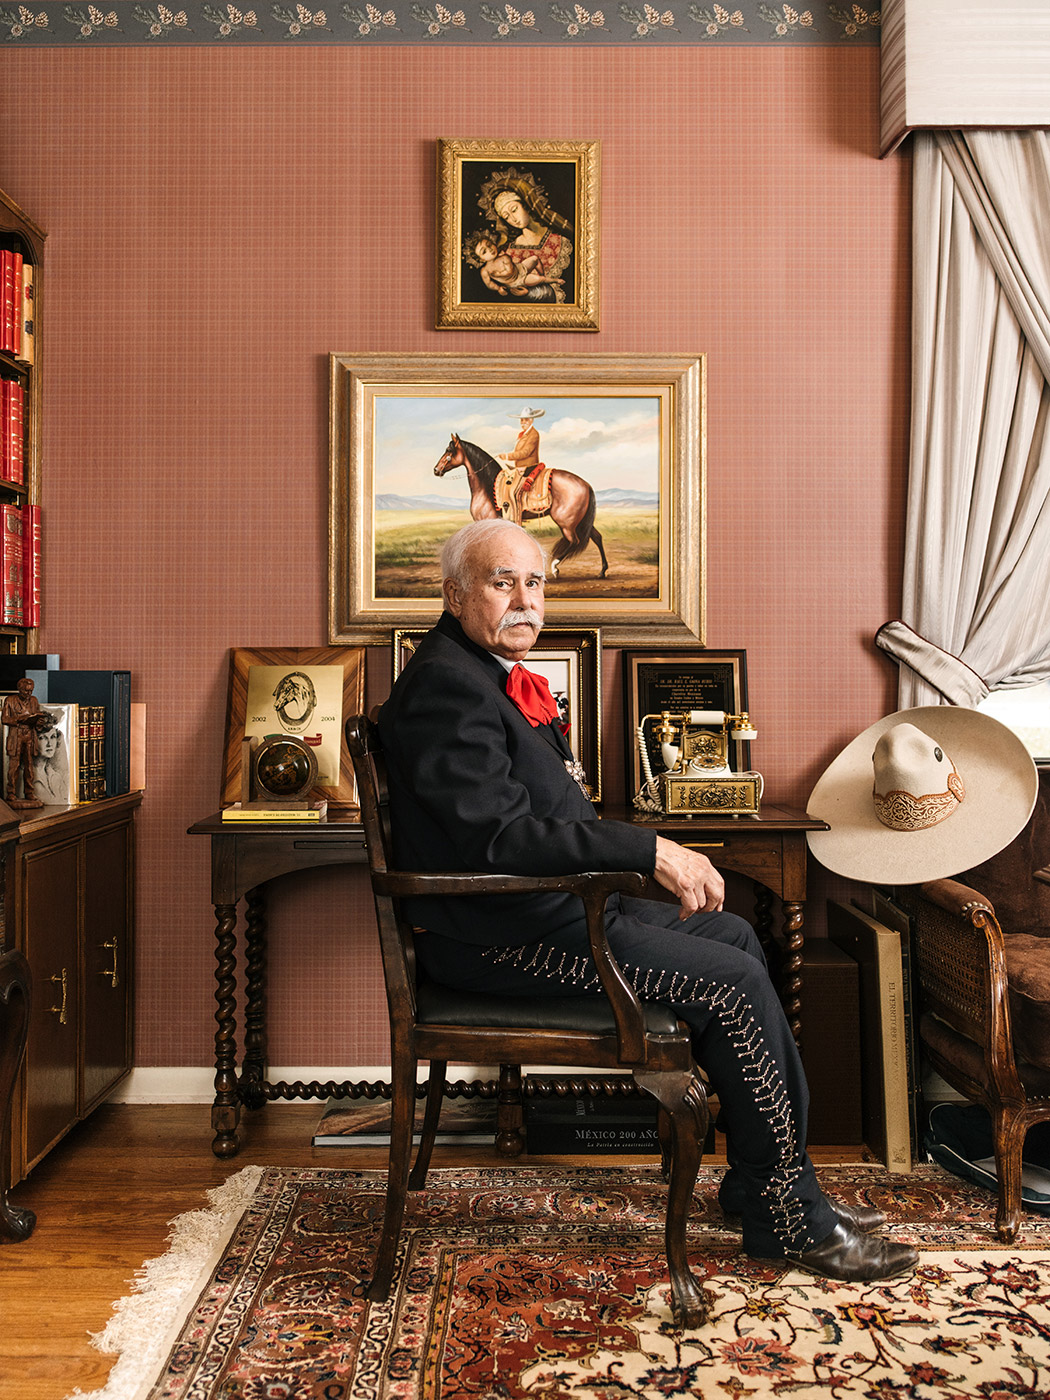 Dr. Raul Gaona photographed at his home in San Antonio, TX by Josh Huskin.